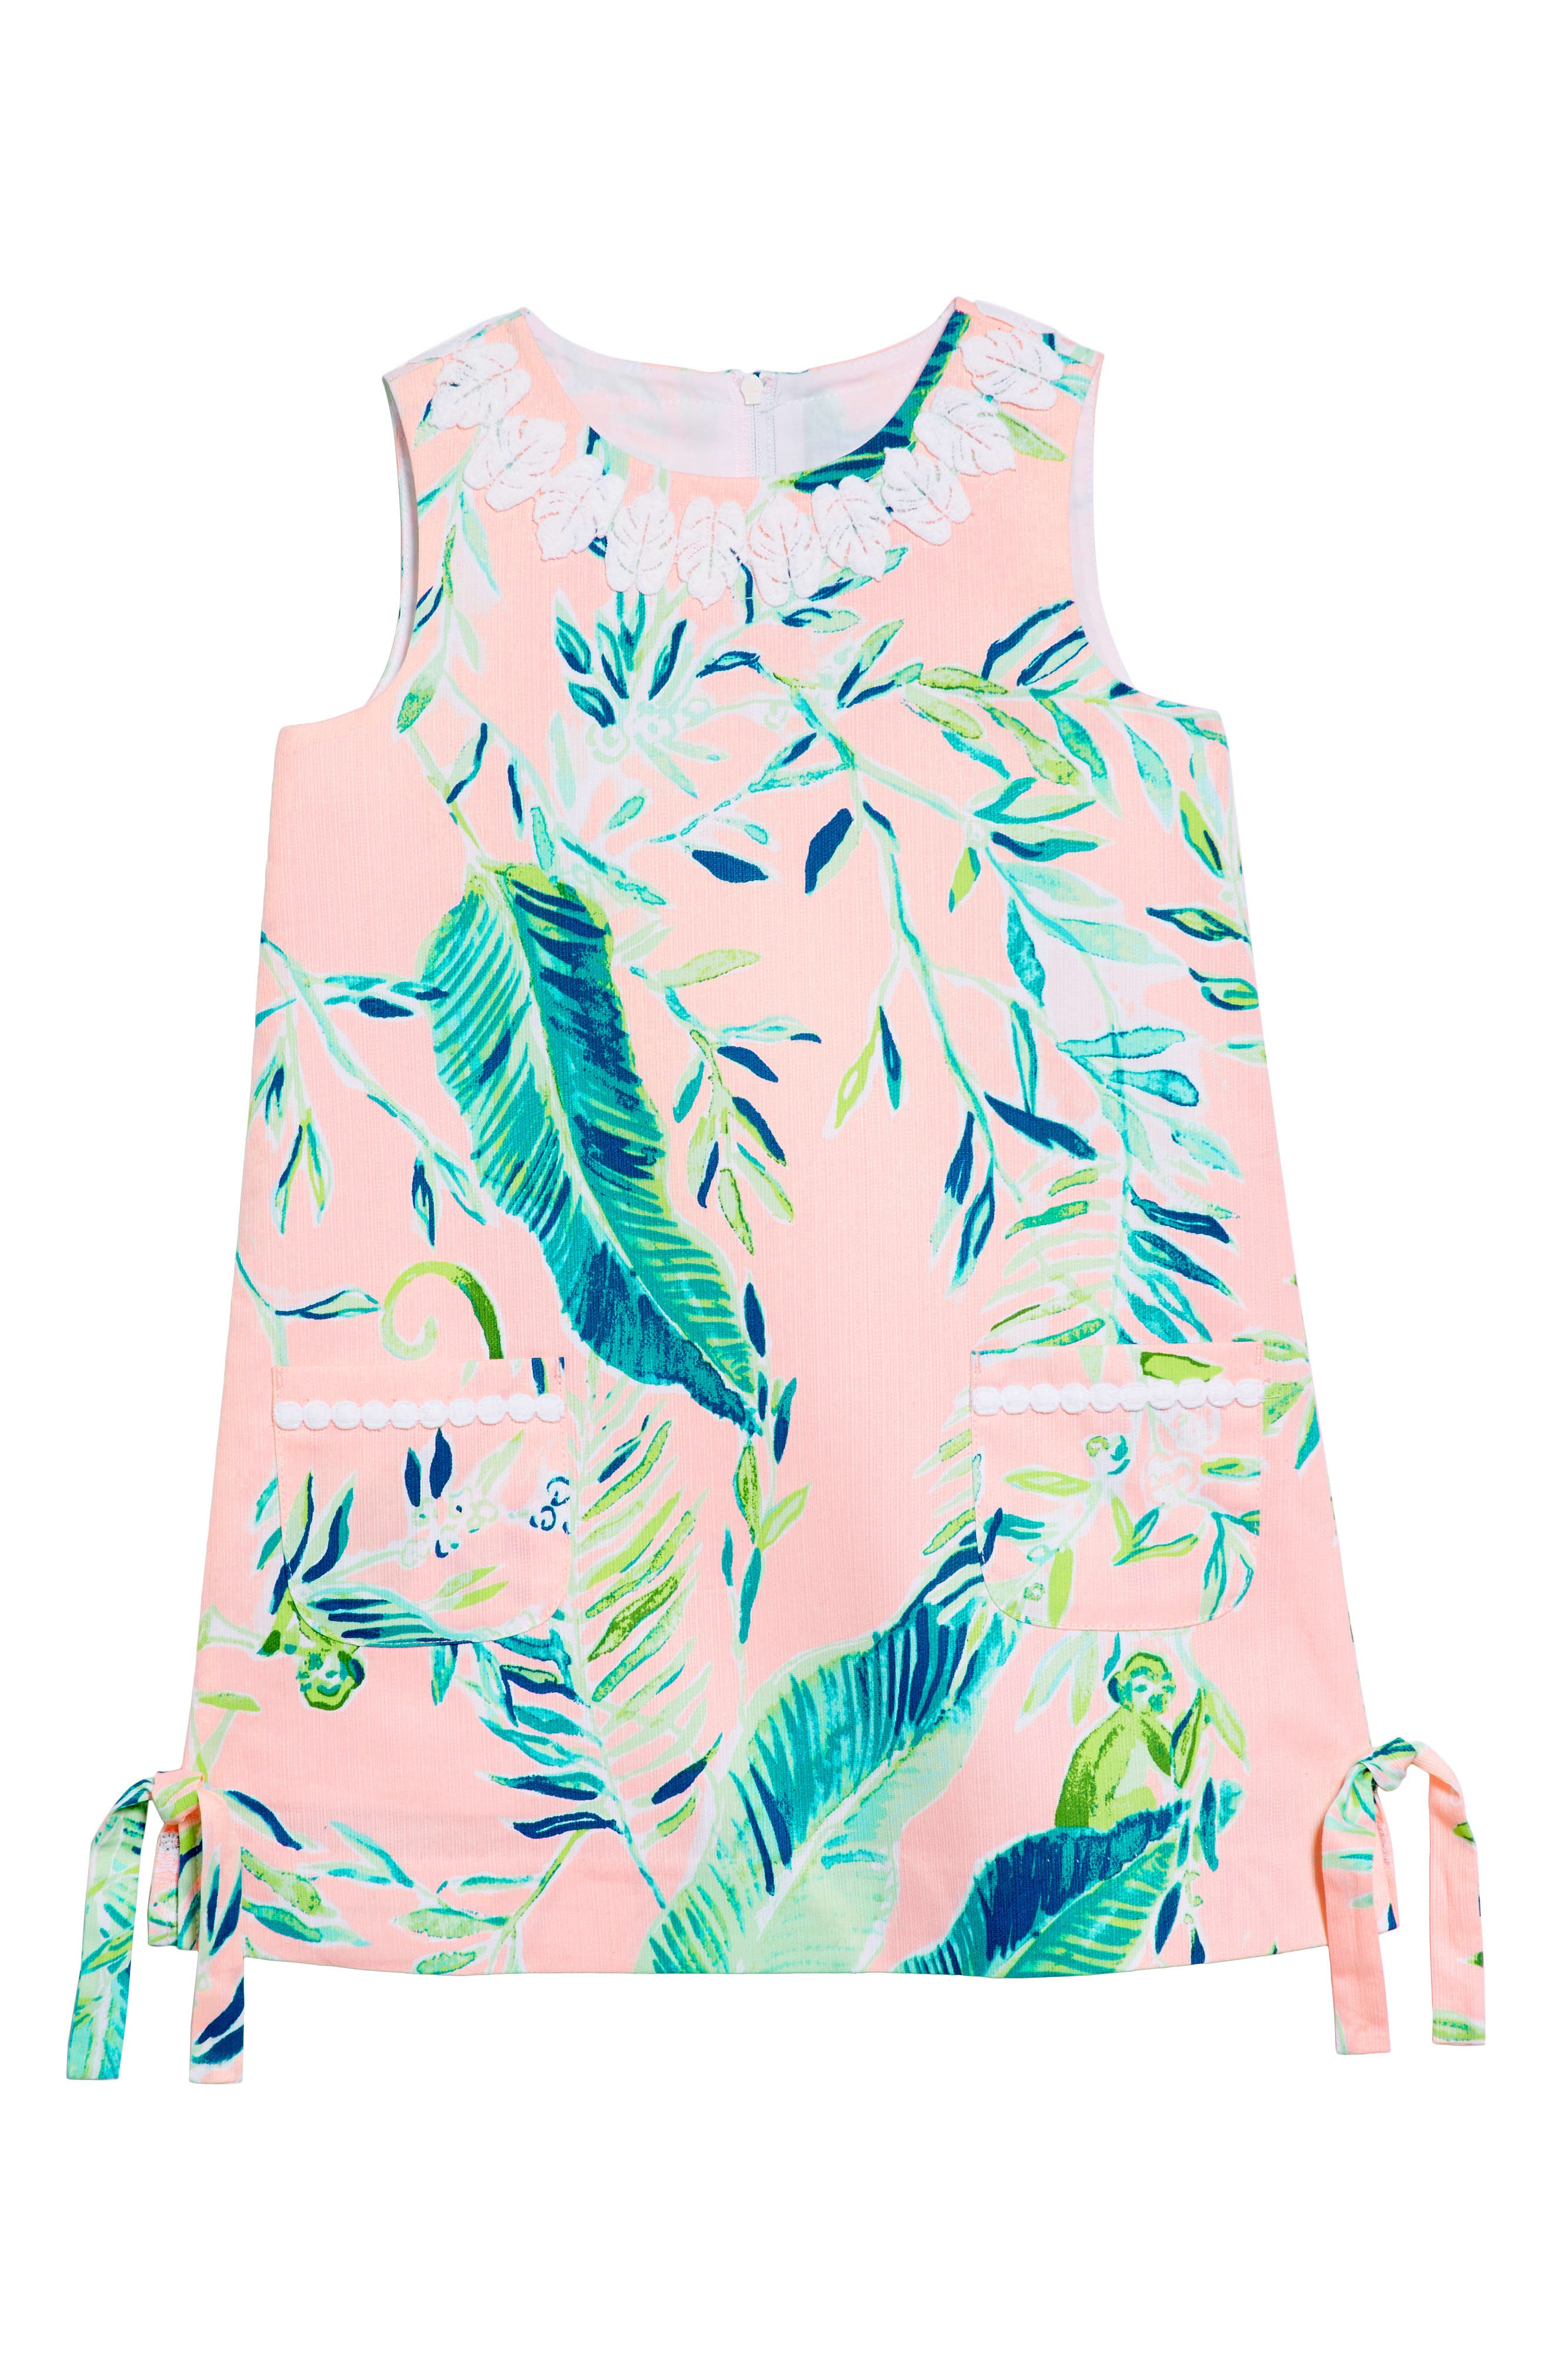 Little Lilly Classic Shift Dress,                         Main,                         color, CORAL REEF TINT CHIMPOISERIE